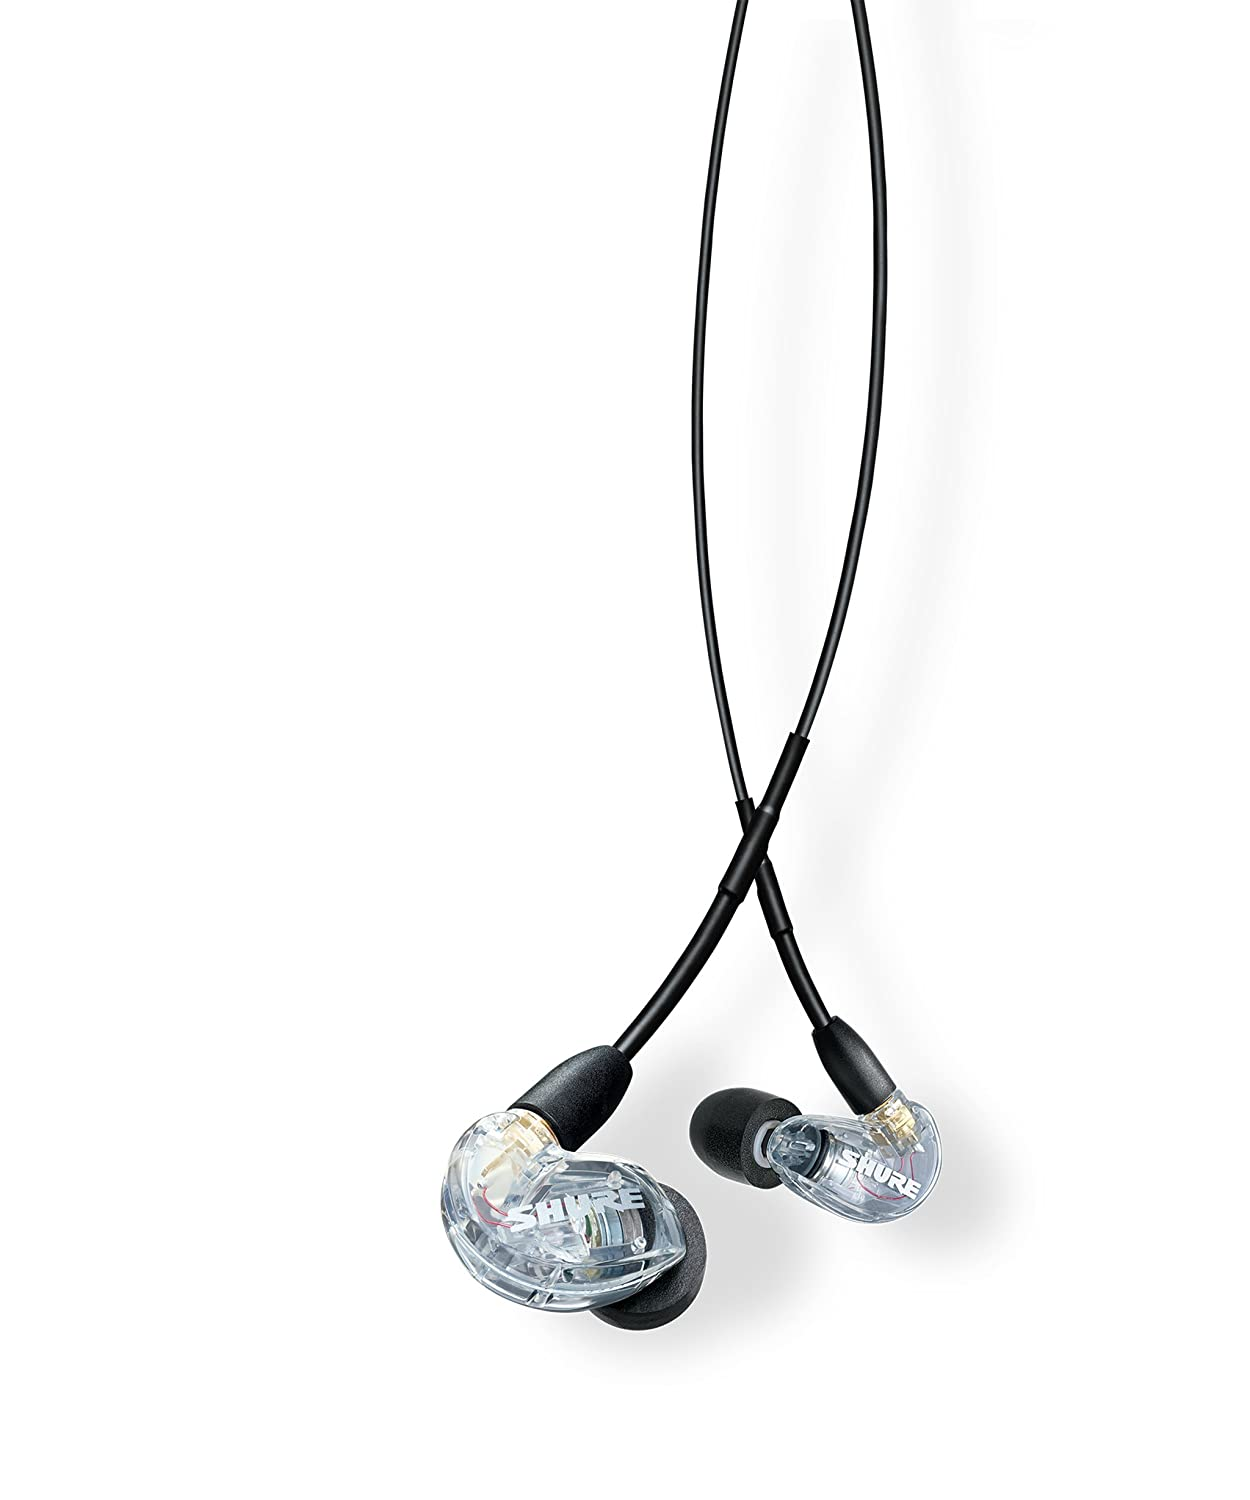 Shure SE215-CL-UNI Sound Isolating Earphones with Inline Remote & Mic for iOS/Android